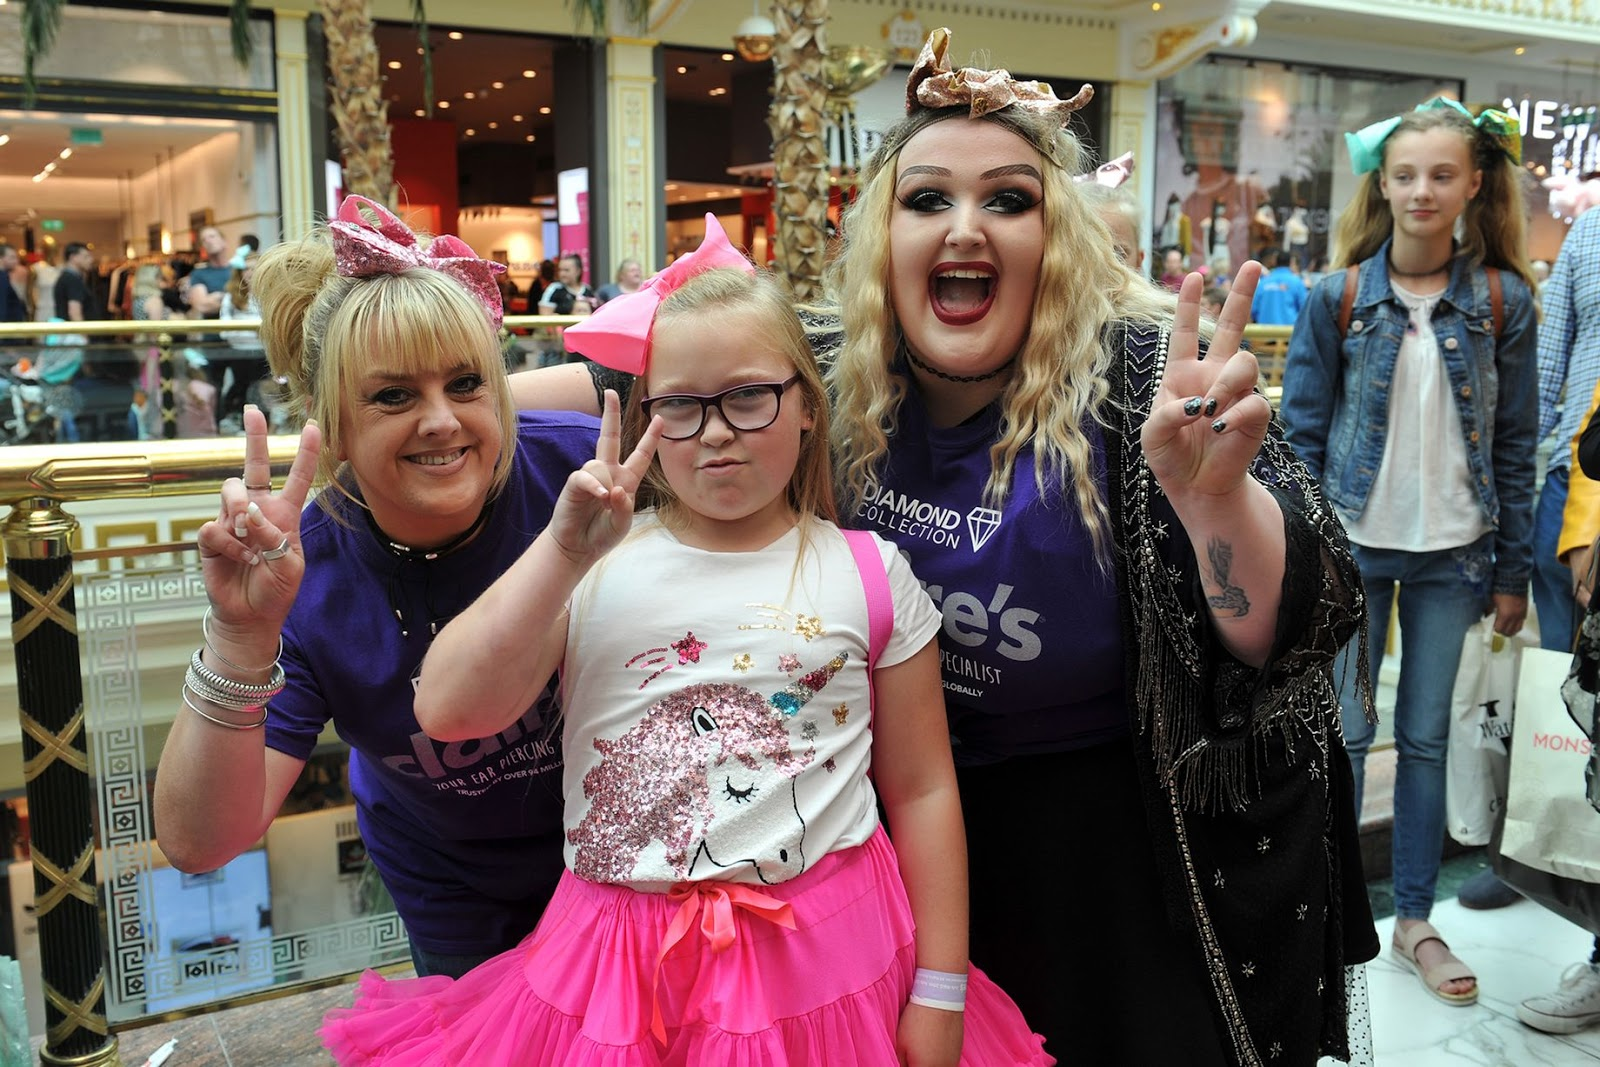 Nickalive jojo bows star jojo siwa sends fans into a frenzy at excited fans queued to meet their idol image eddie garvey kristyandbryce Images